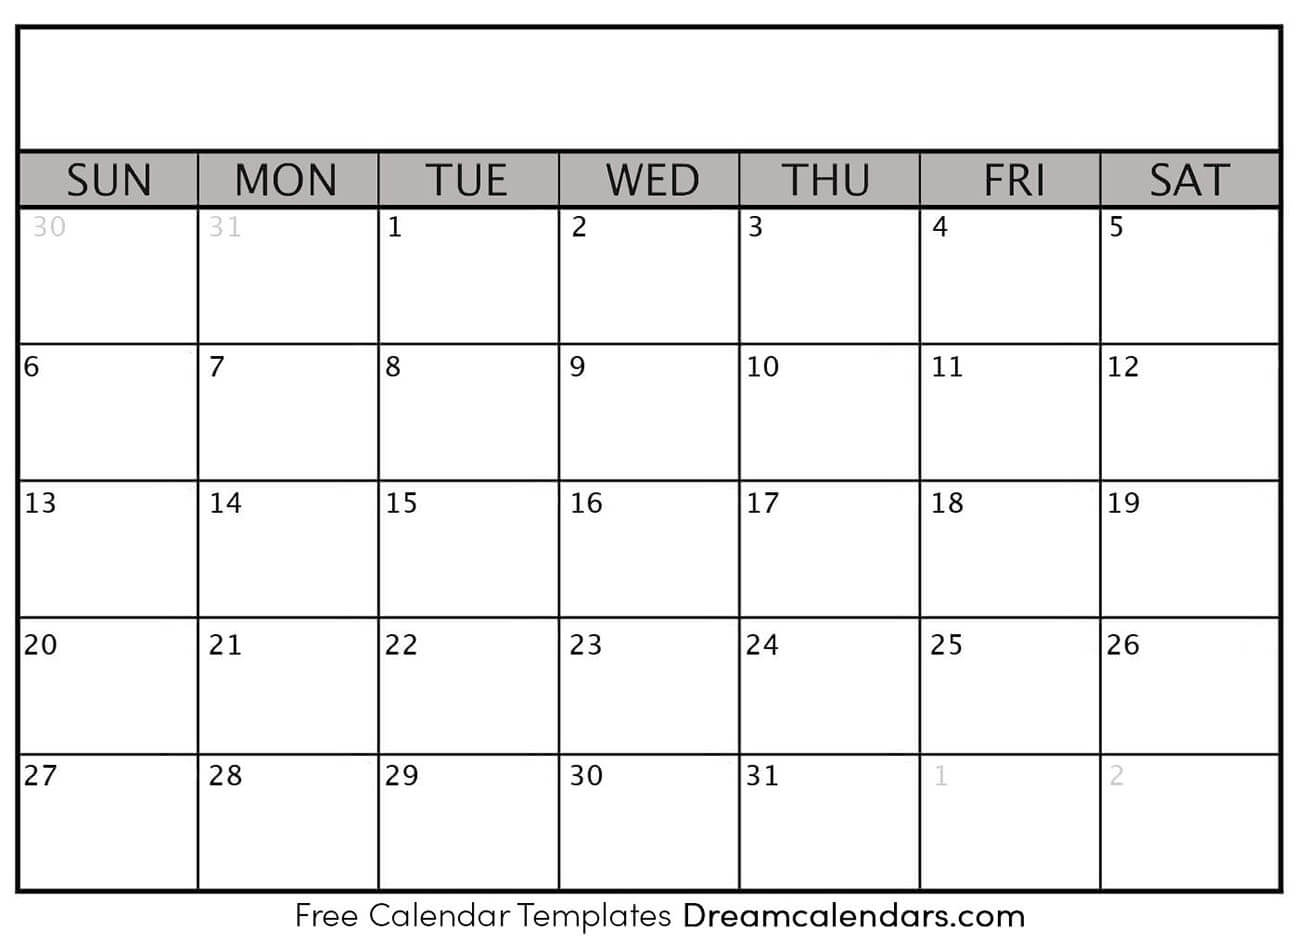 Printable Blank Calendar 2021 | Dream Calendars intended for Free Printable Calendar With Space To Write